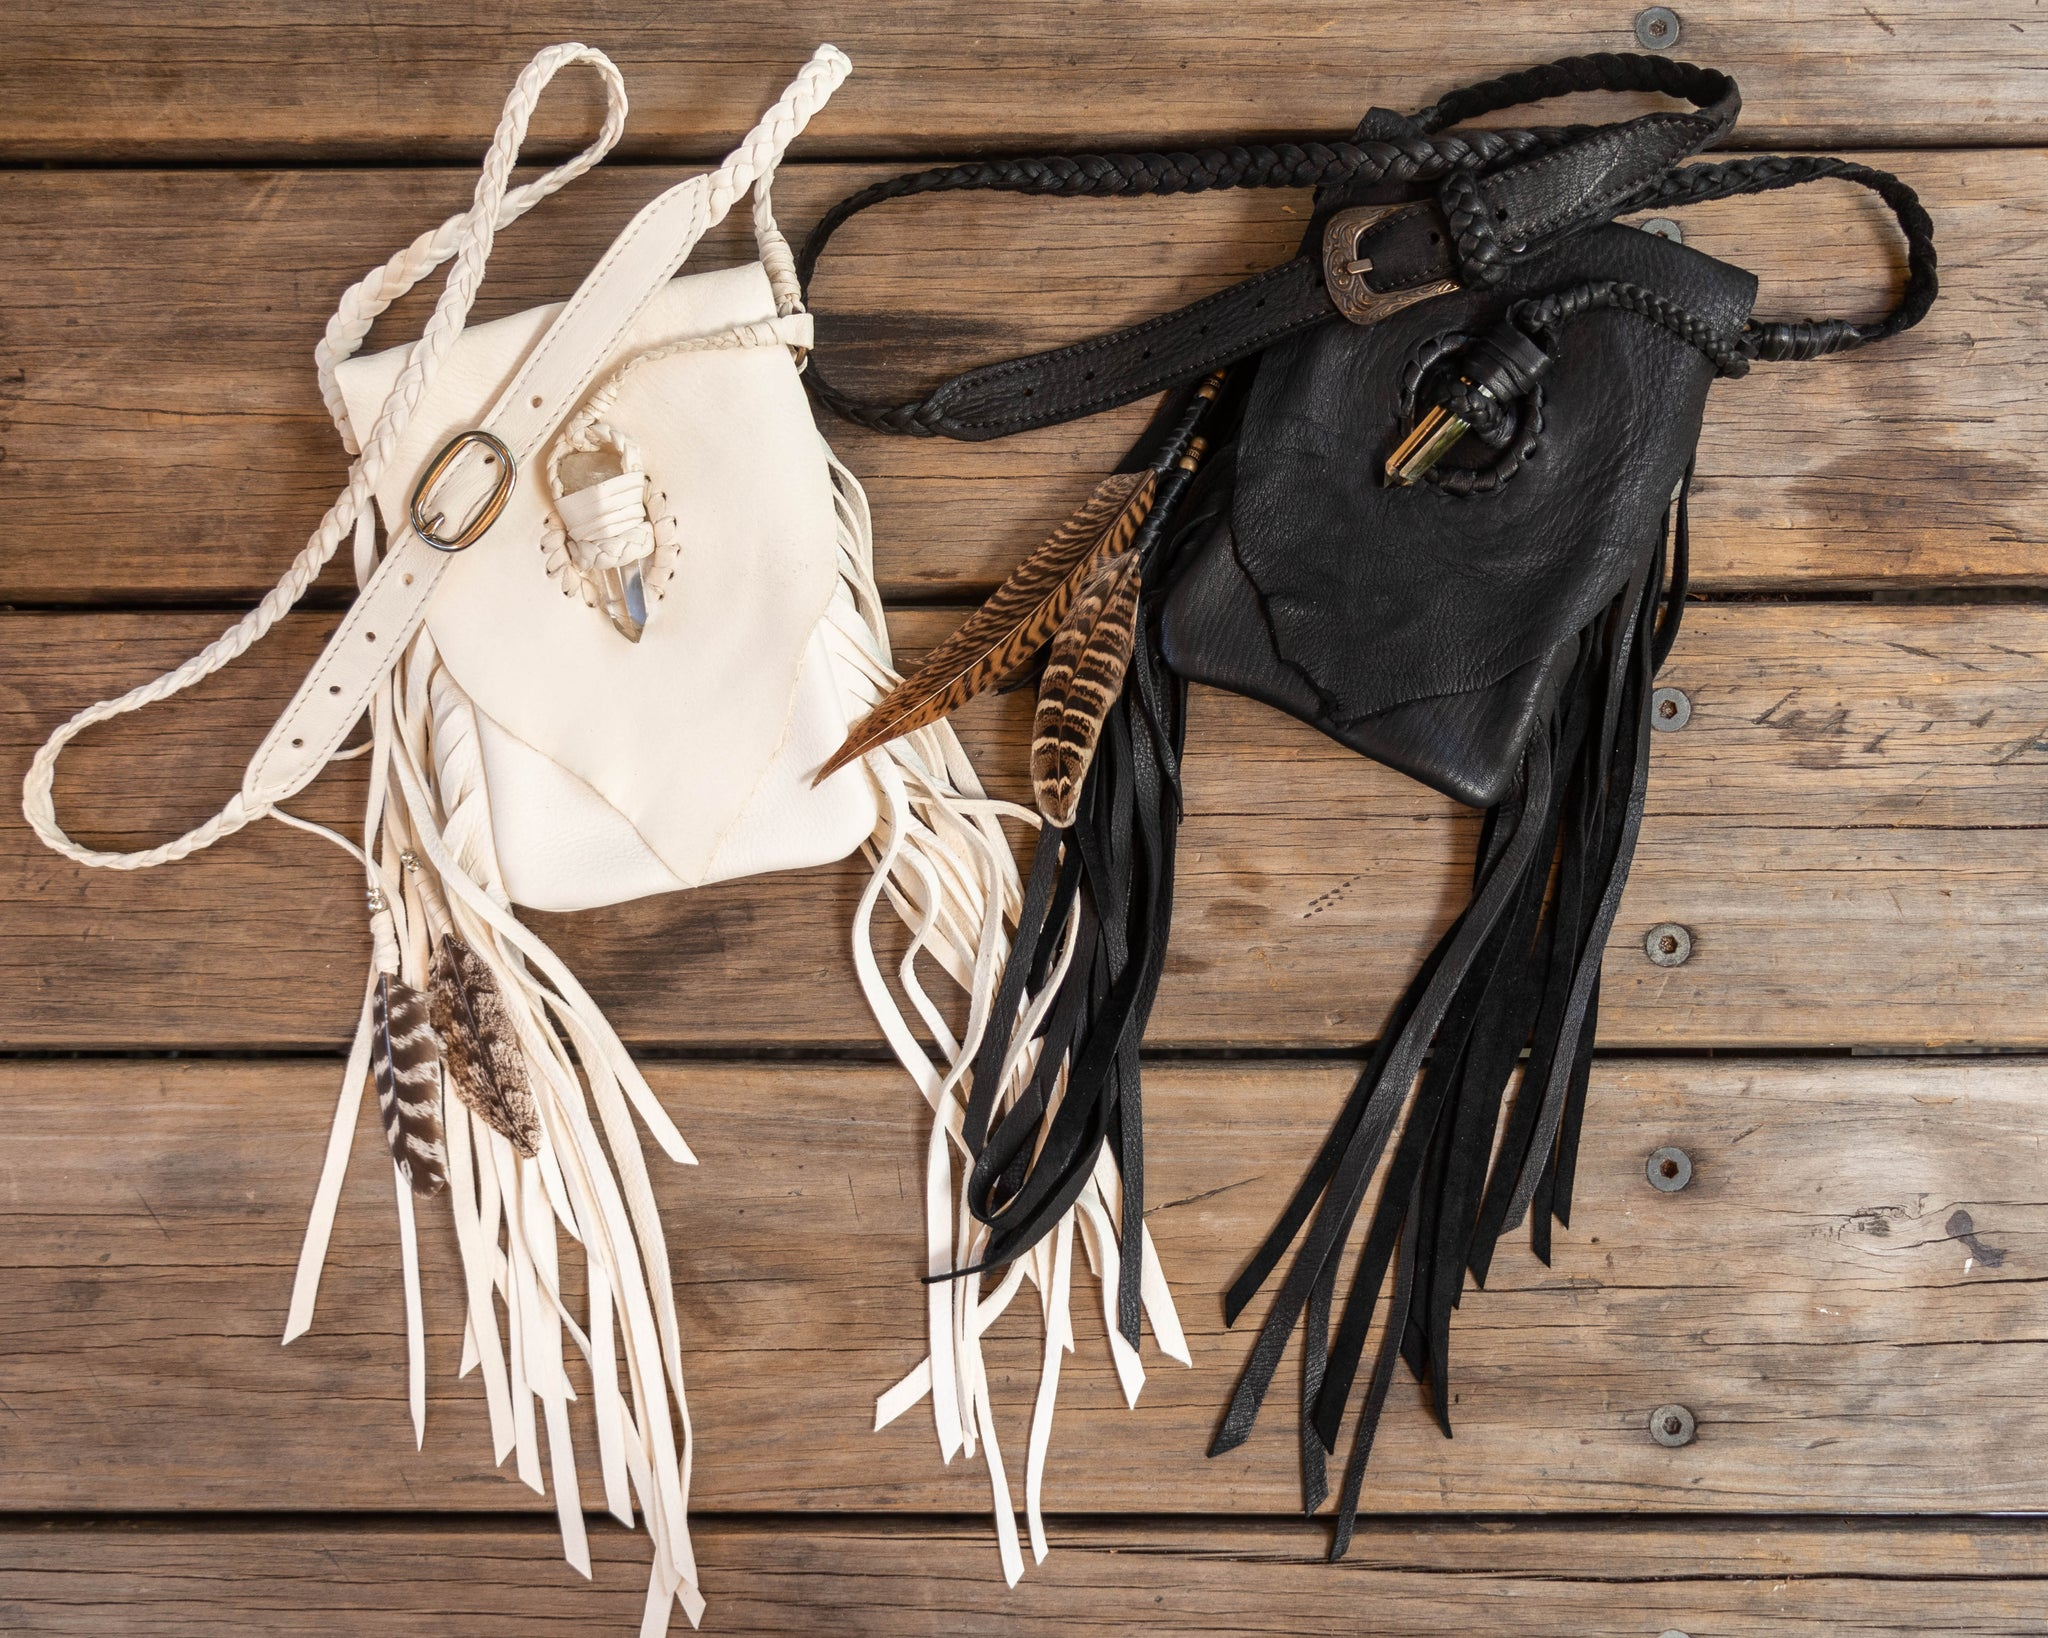 Custom made phone pouches made out of white and black deer hide featuring handpicked crystals & plaited straps  - $650